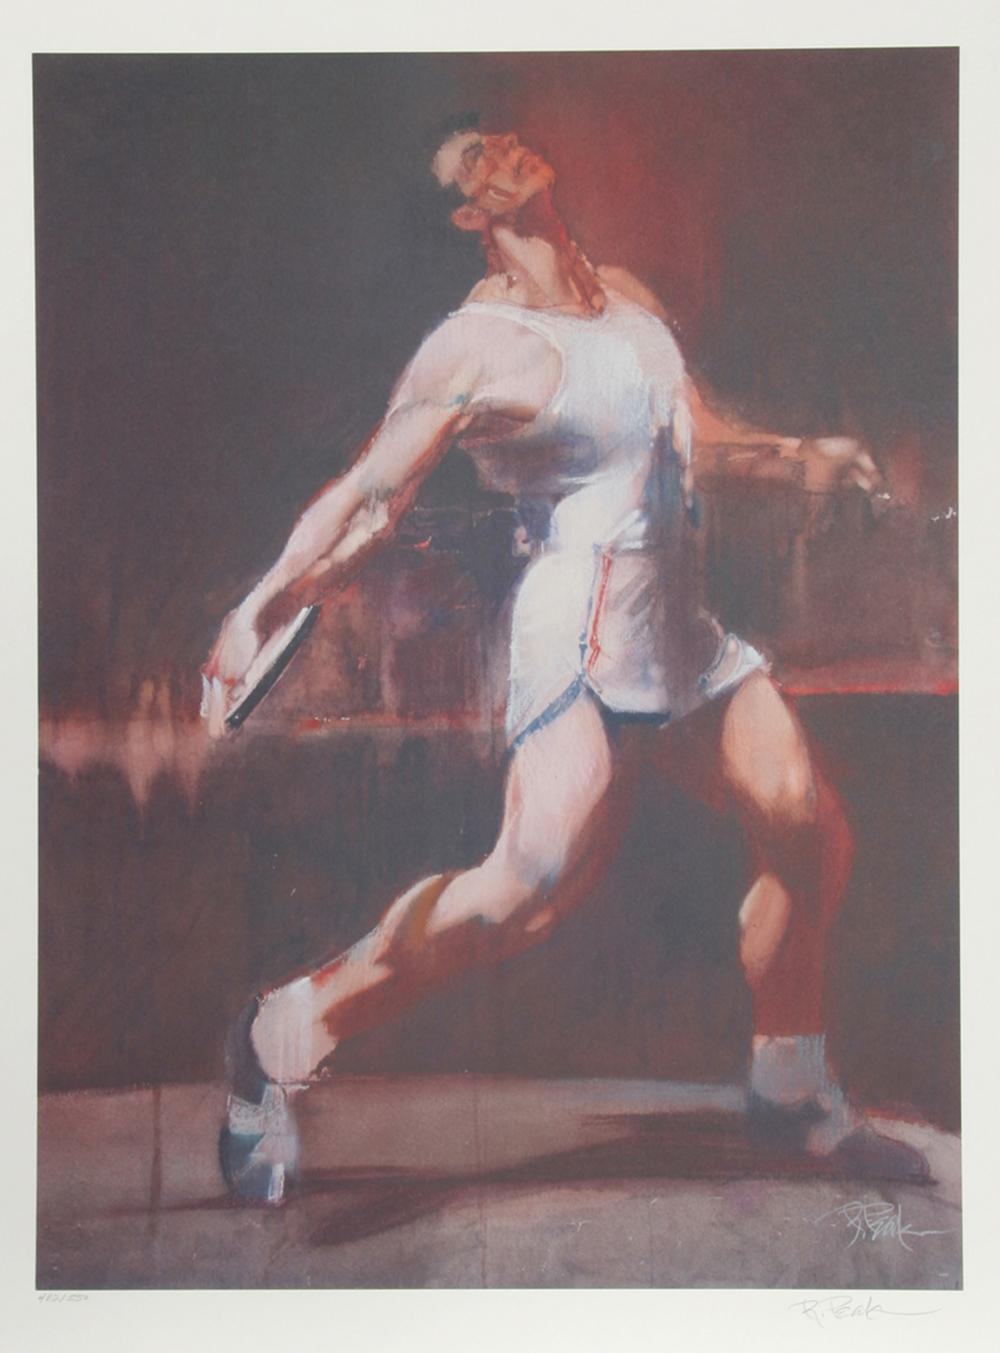 Robert Peak, Discus Thrower from the Visions of Gold Olympic Portfolio, Lithograph